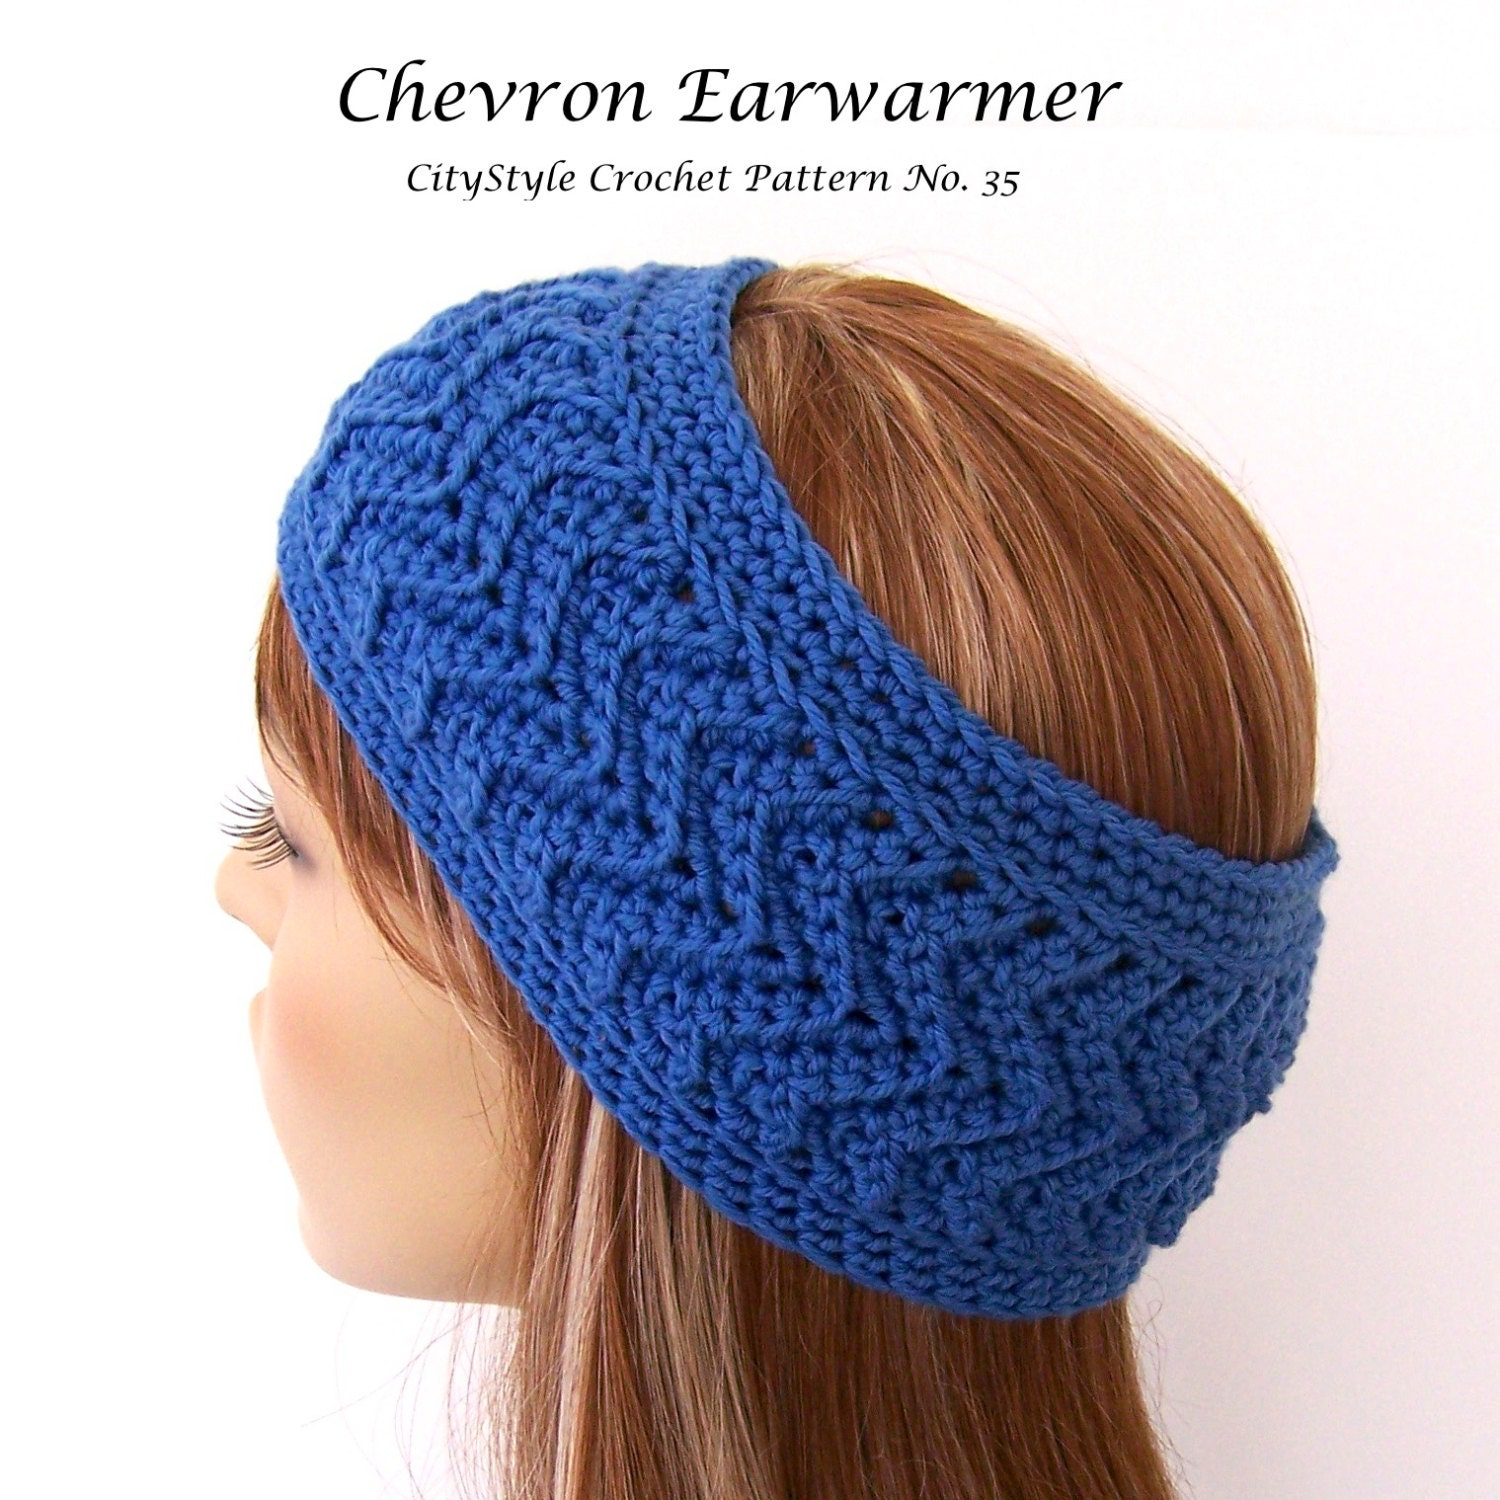 Crochet Pattern Headband, Chevron Headband, Headband Pattern ...